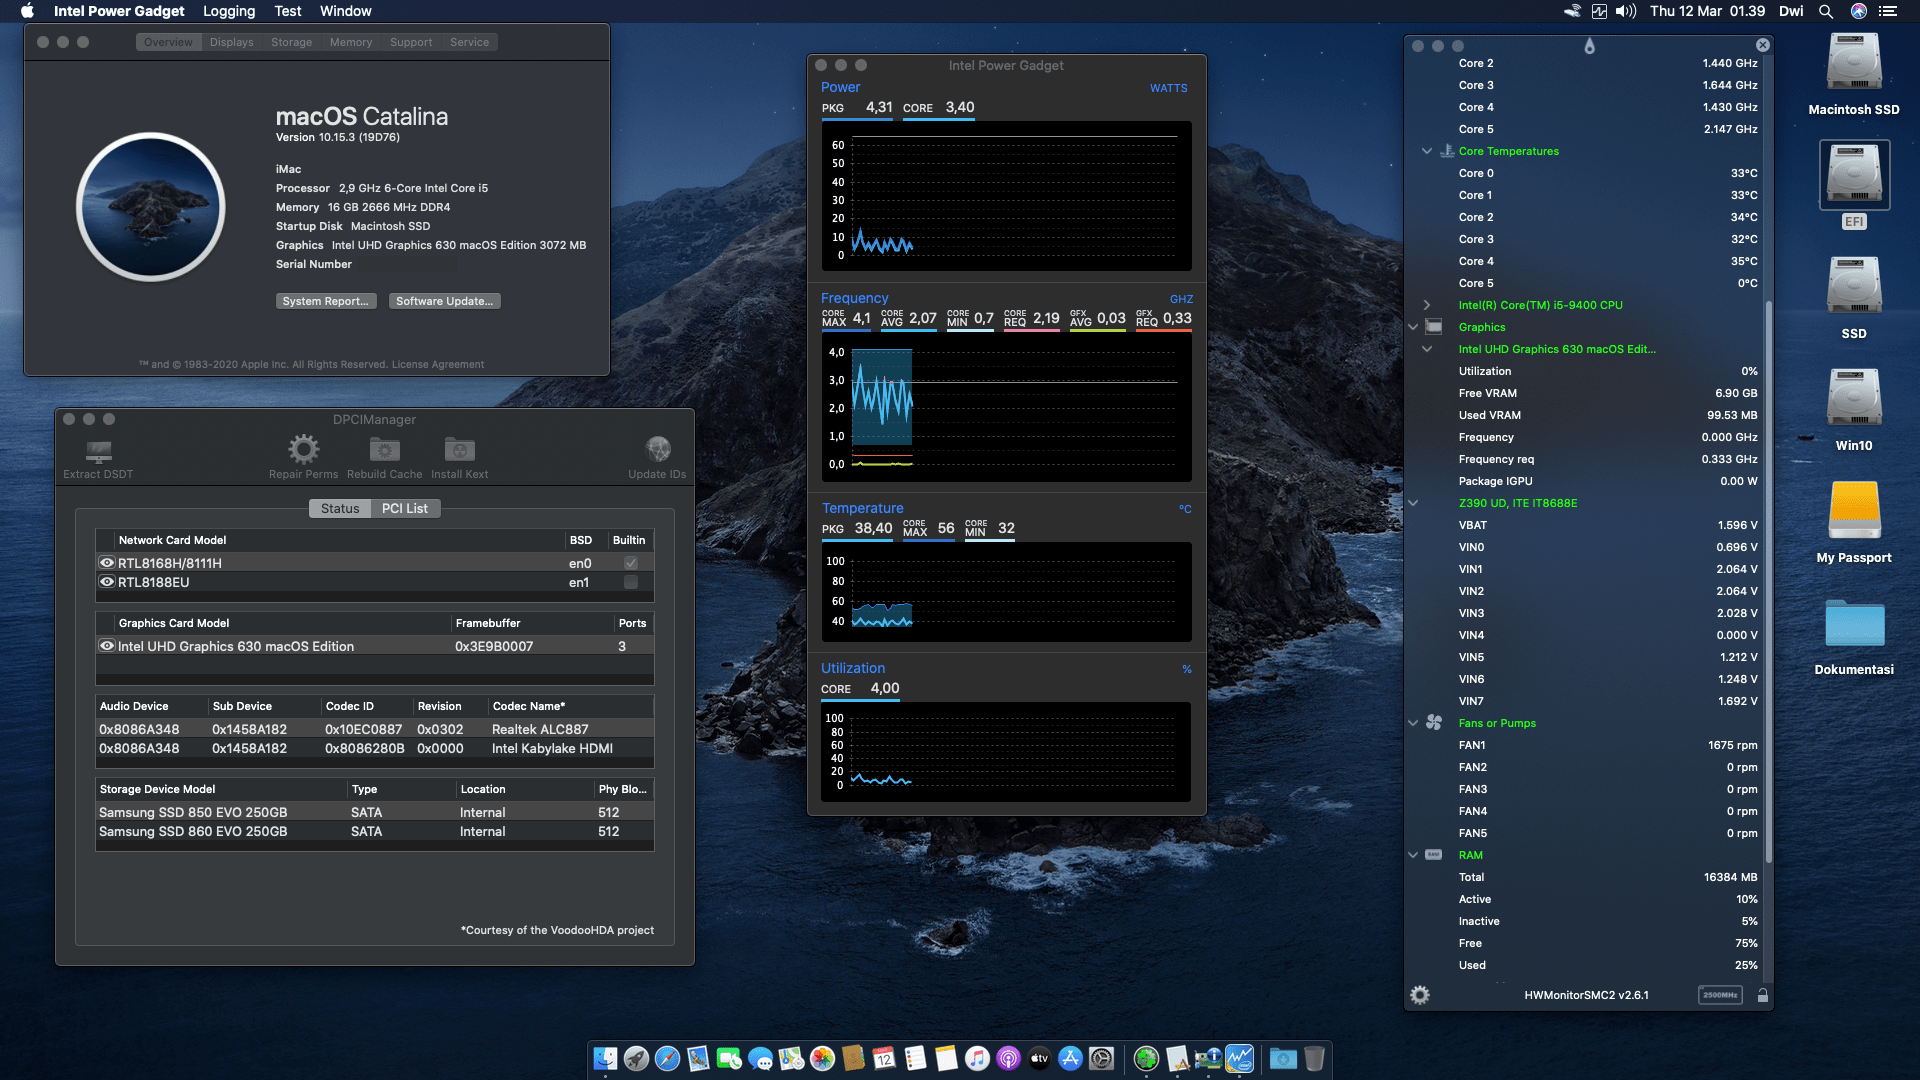 Success Hackintosh macOS Catalina 10.15.3 Build 19D76 in Gigabyte Z390 UD + Intel Core i5-9400